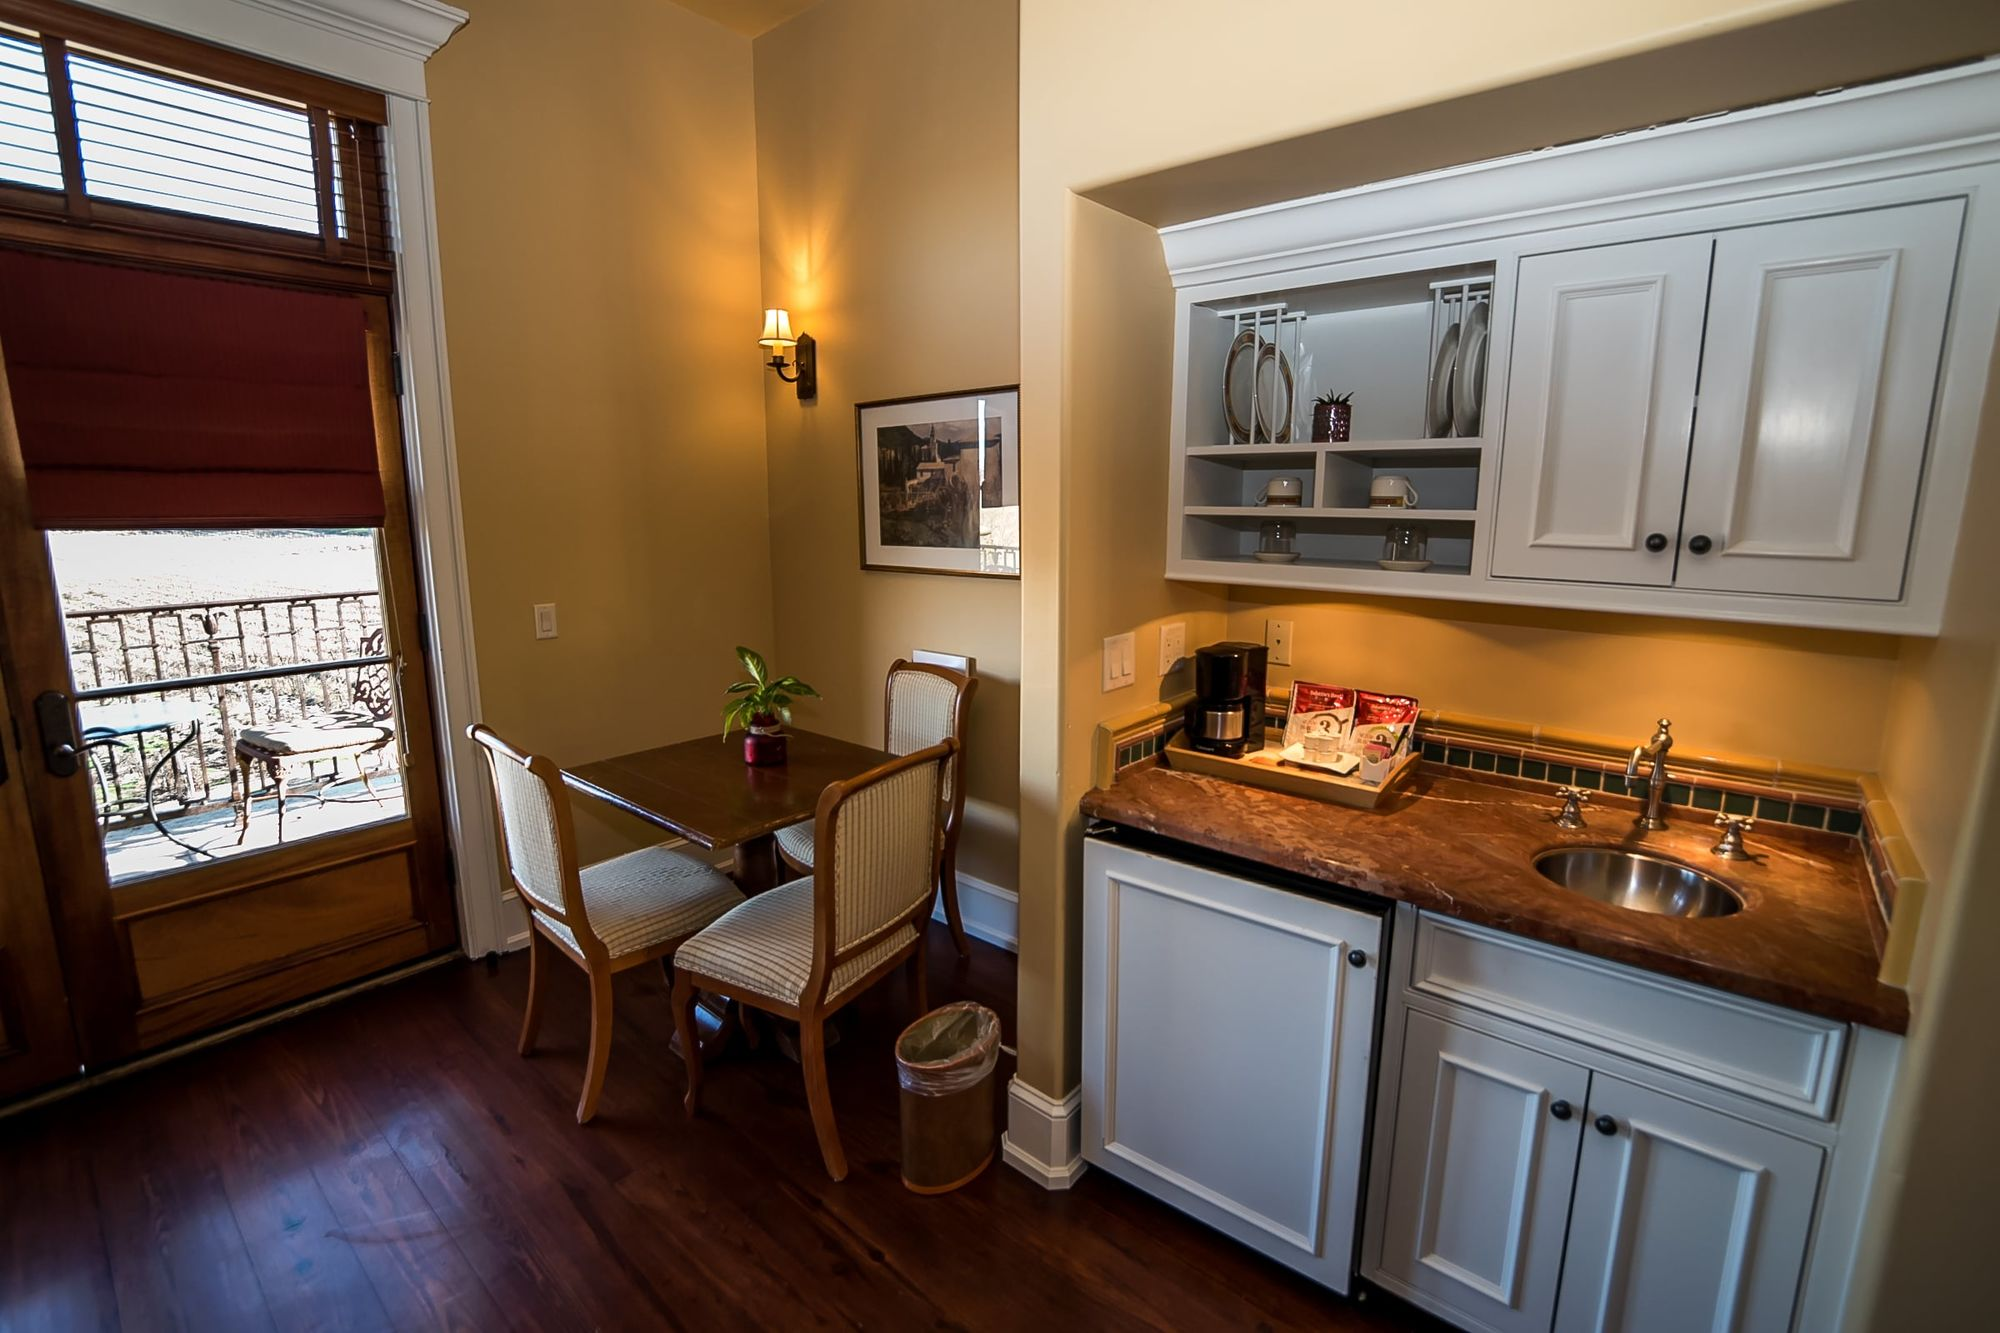 Small wet bar with seating area for three